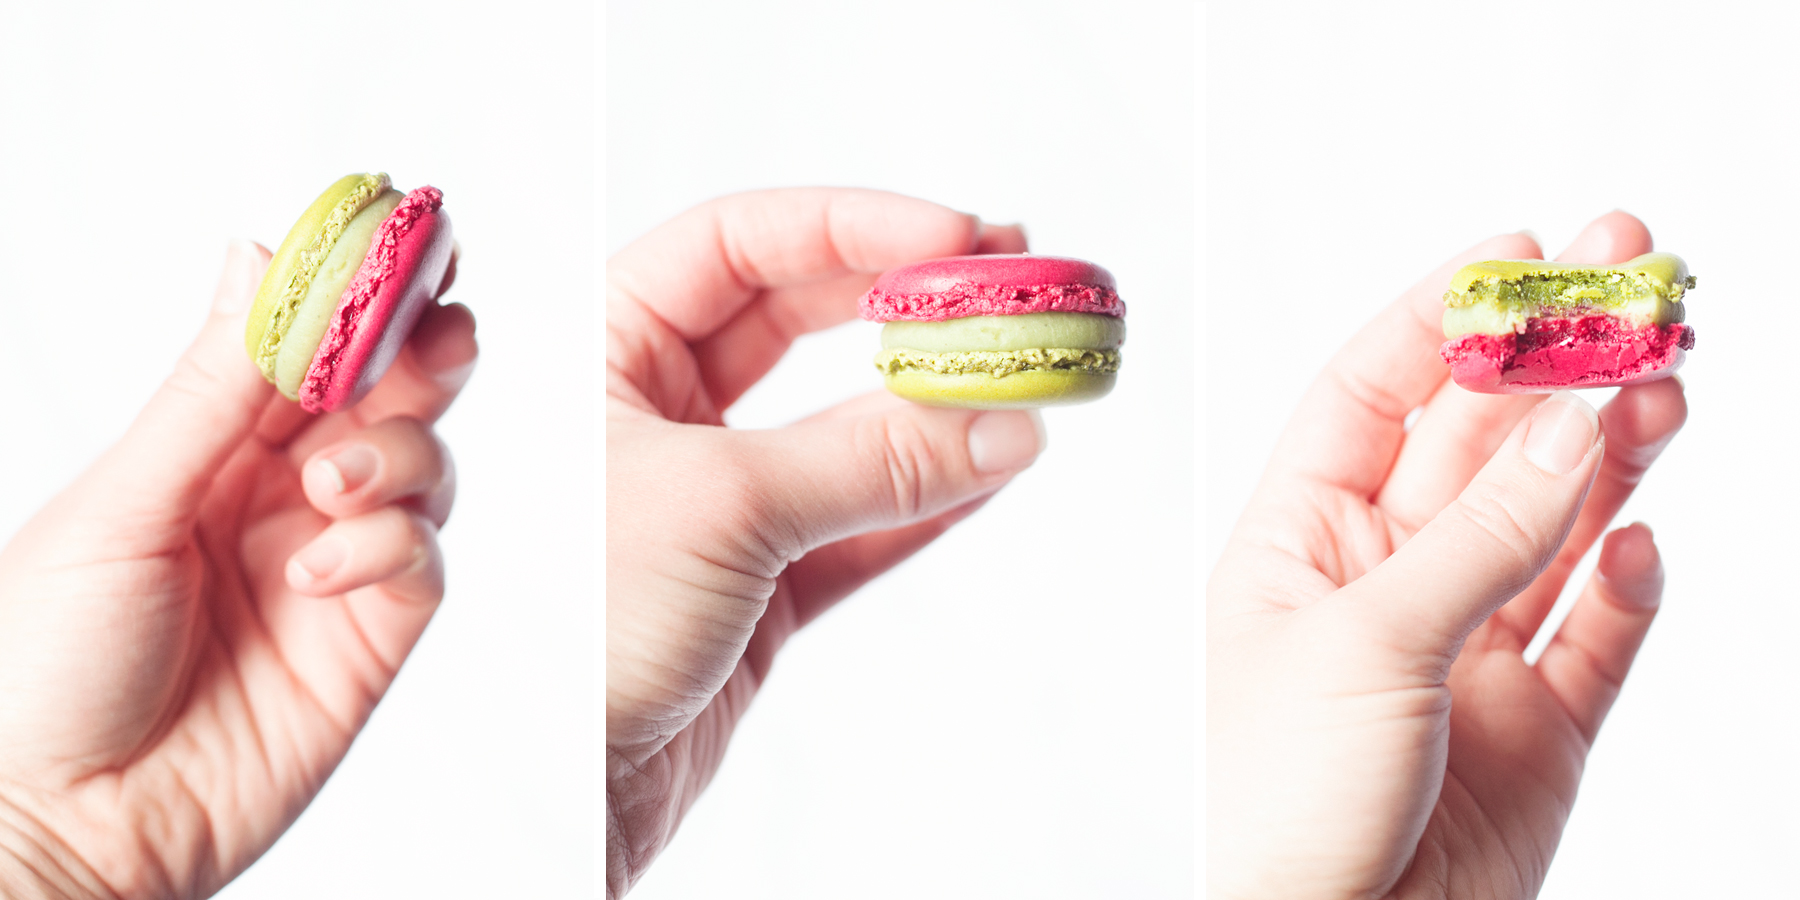 Pierre Hermé Macaron by Carin Olsson (Paris in Four Months)